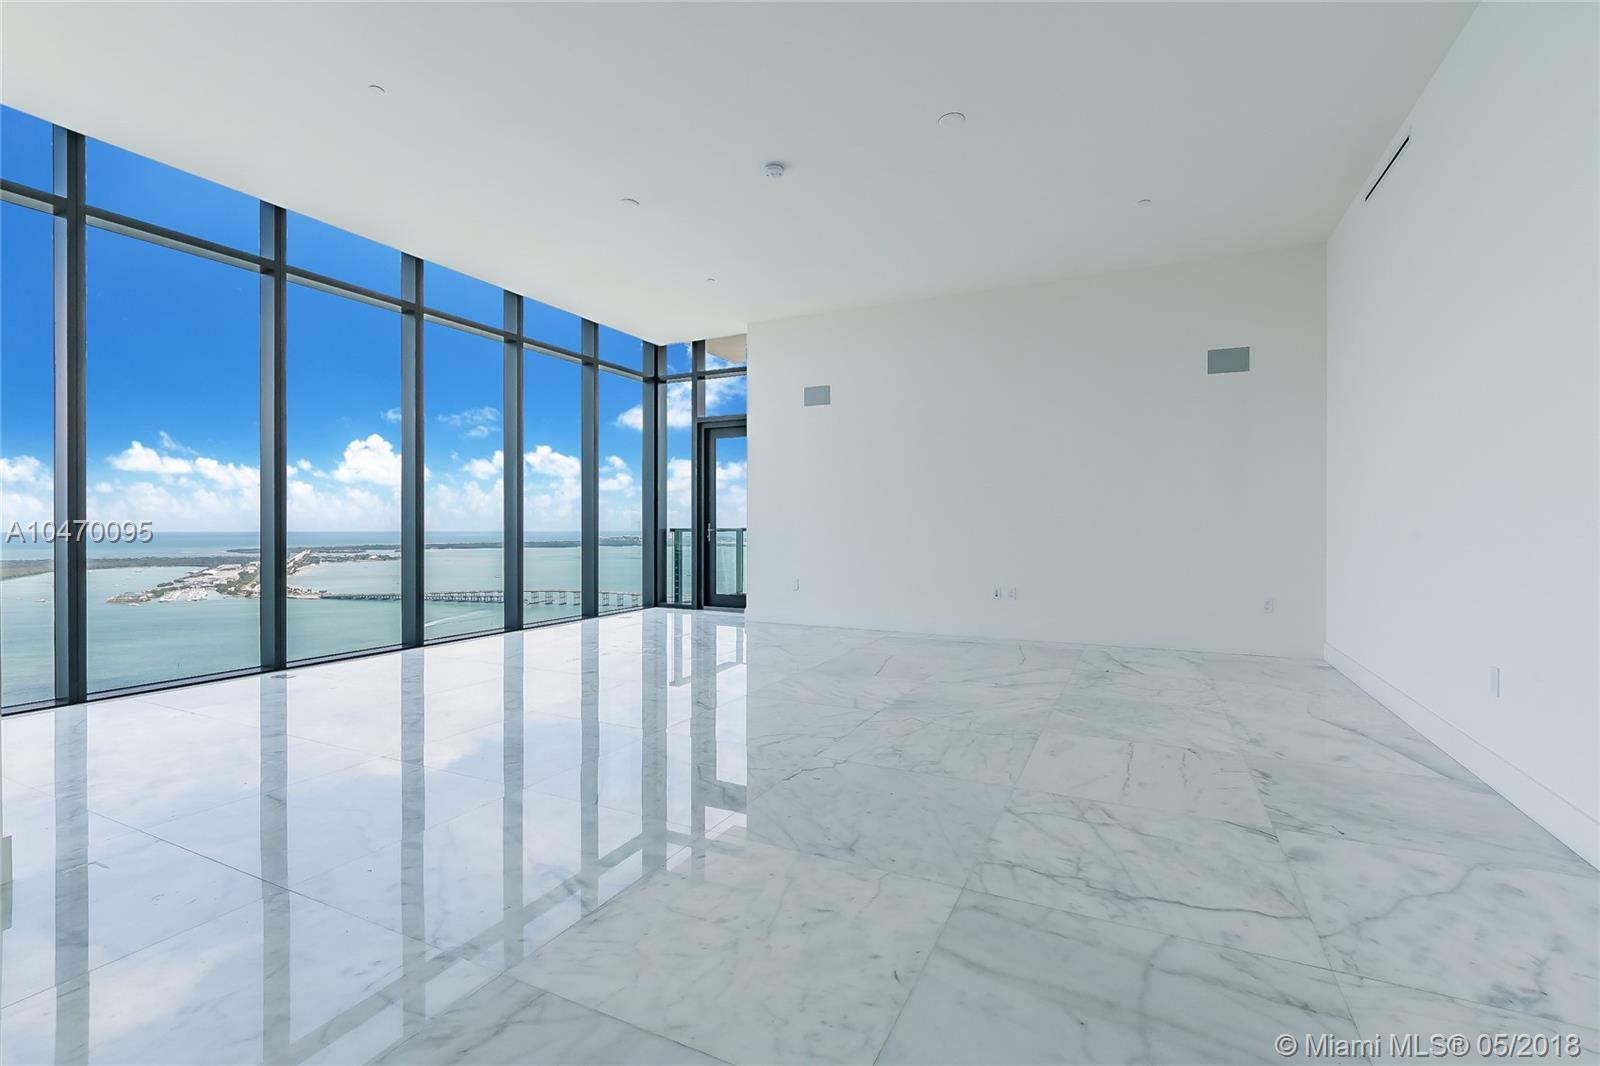 1451 Brickell ave-PH5002 miami-fl-33131-a10470095-Pic04